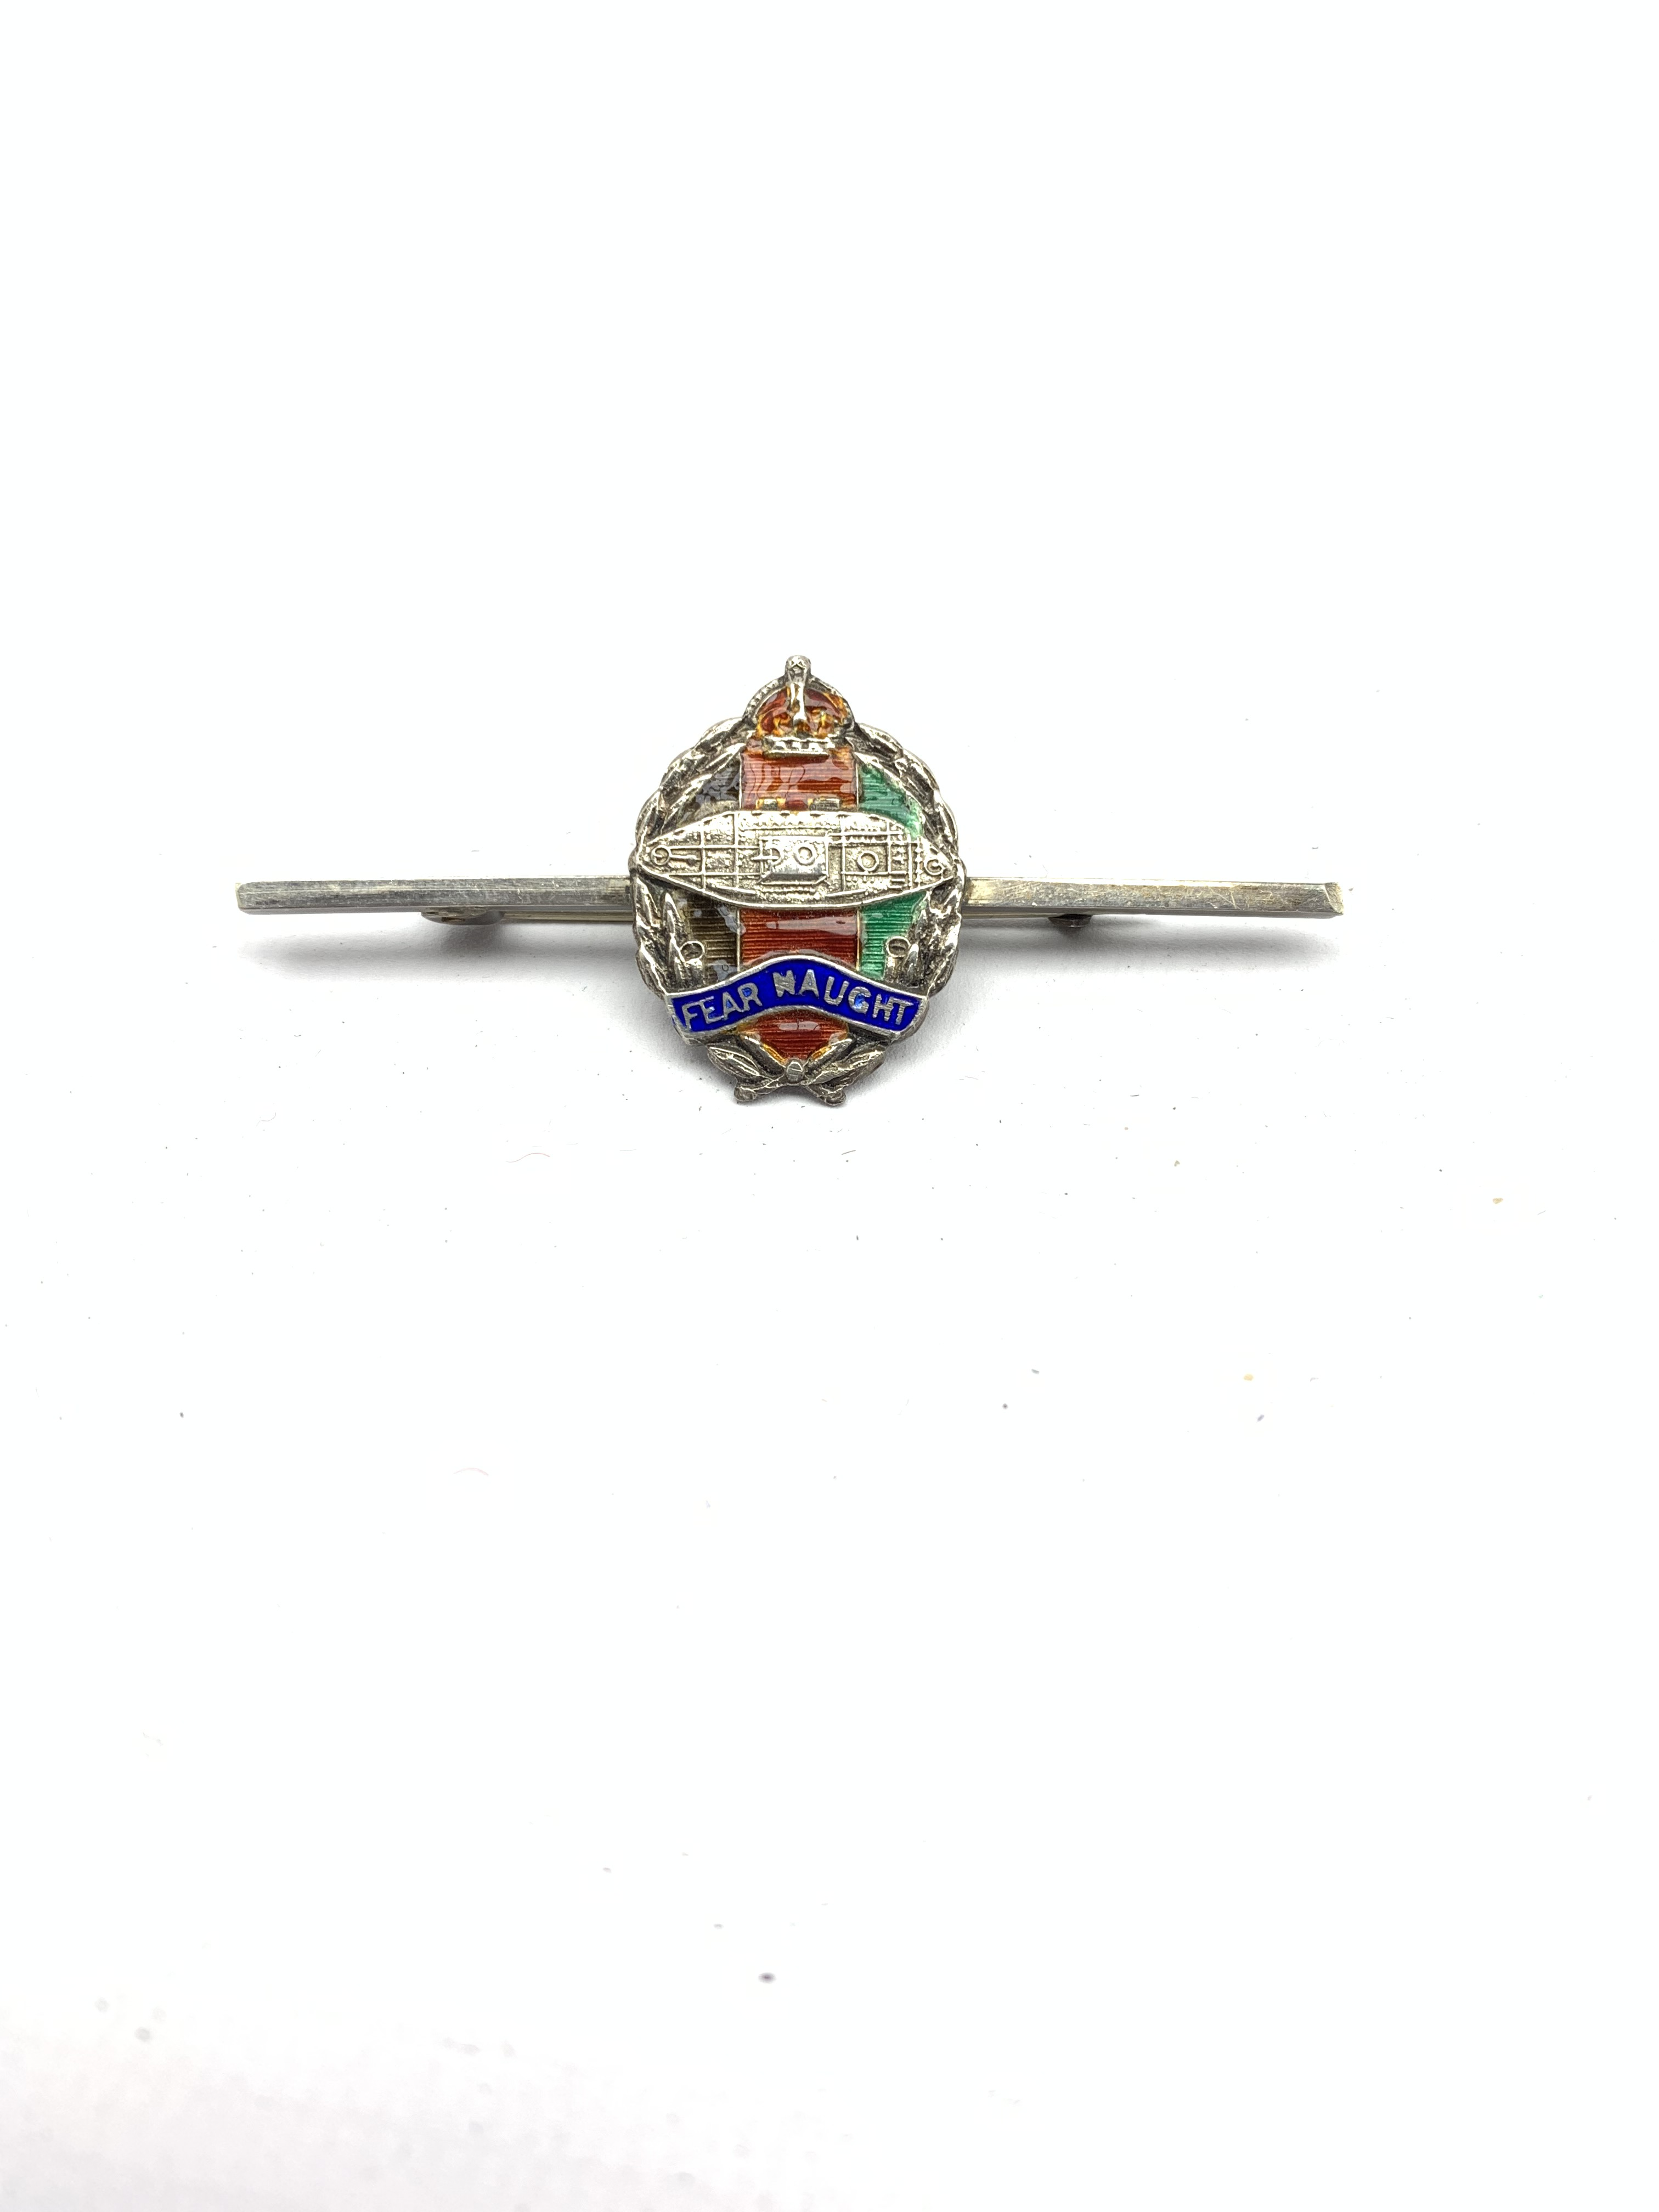 9ct gold and blue enamel brooch for XIII-XVIII Royal Hussars , four other Hussars brooches and clips - Image 11 of 15